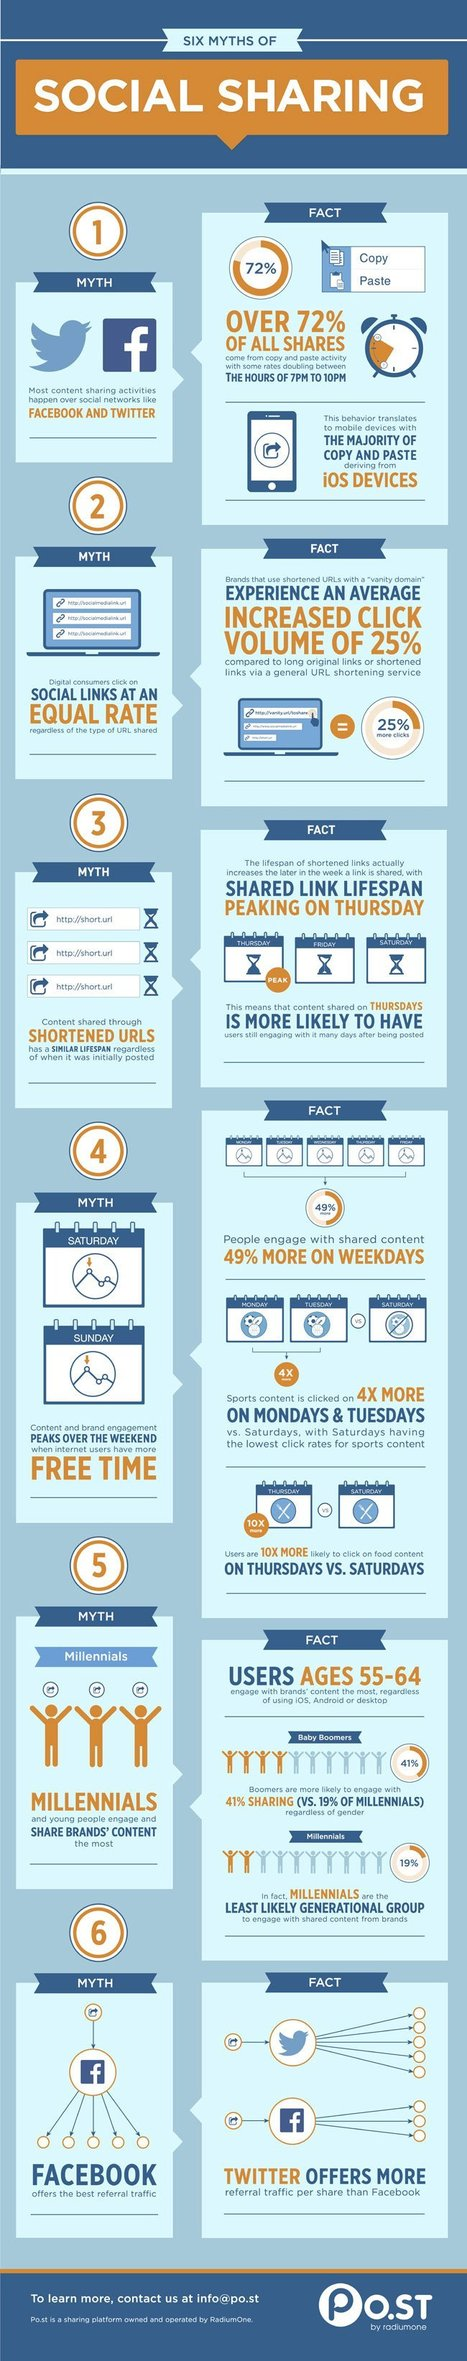 6 Myths of Social Sharing (infographic) | How to Rock a Presentation | Scoop.it